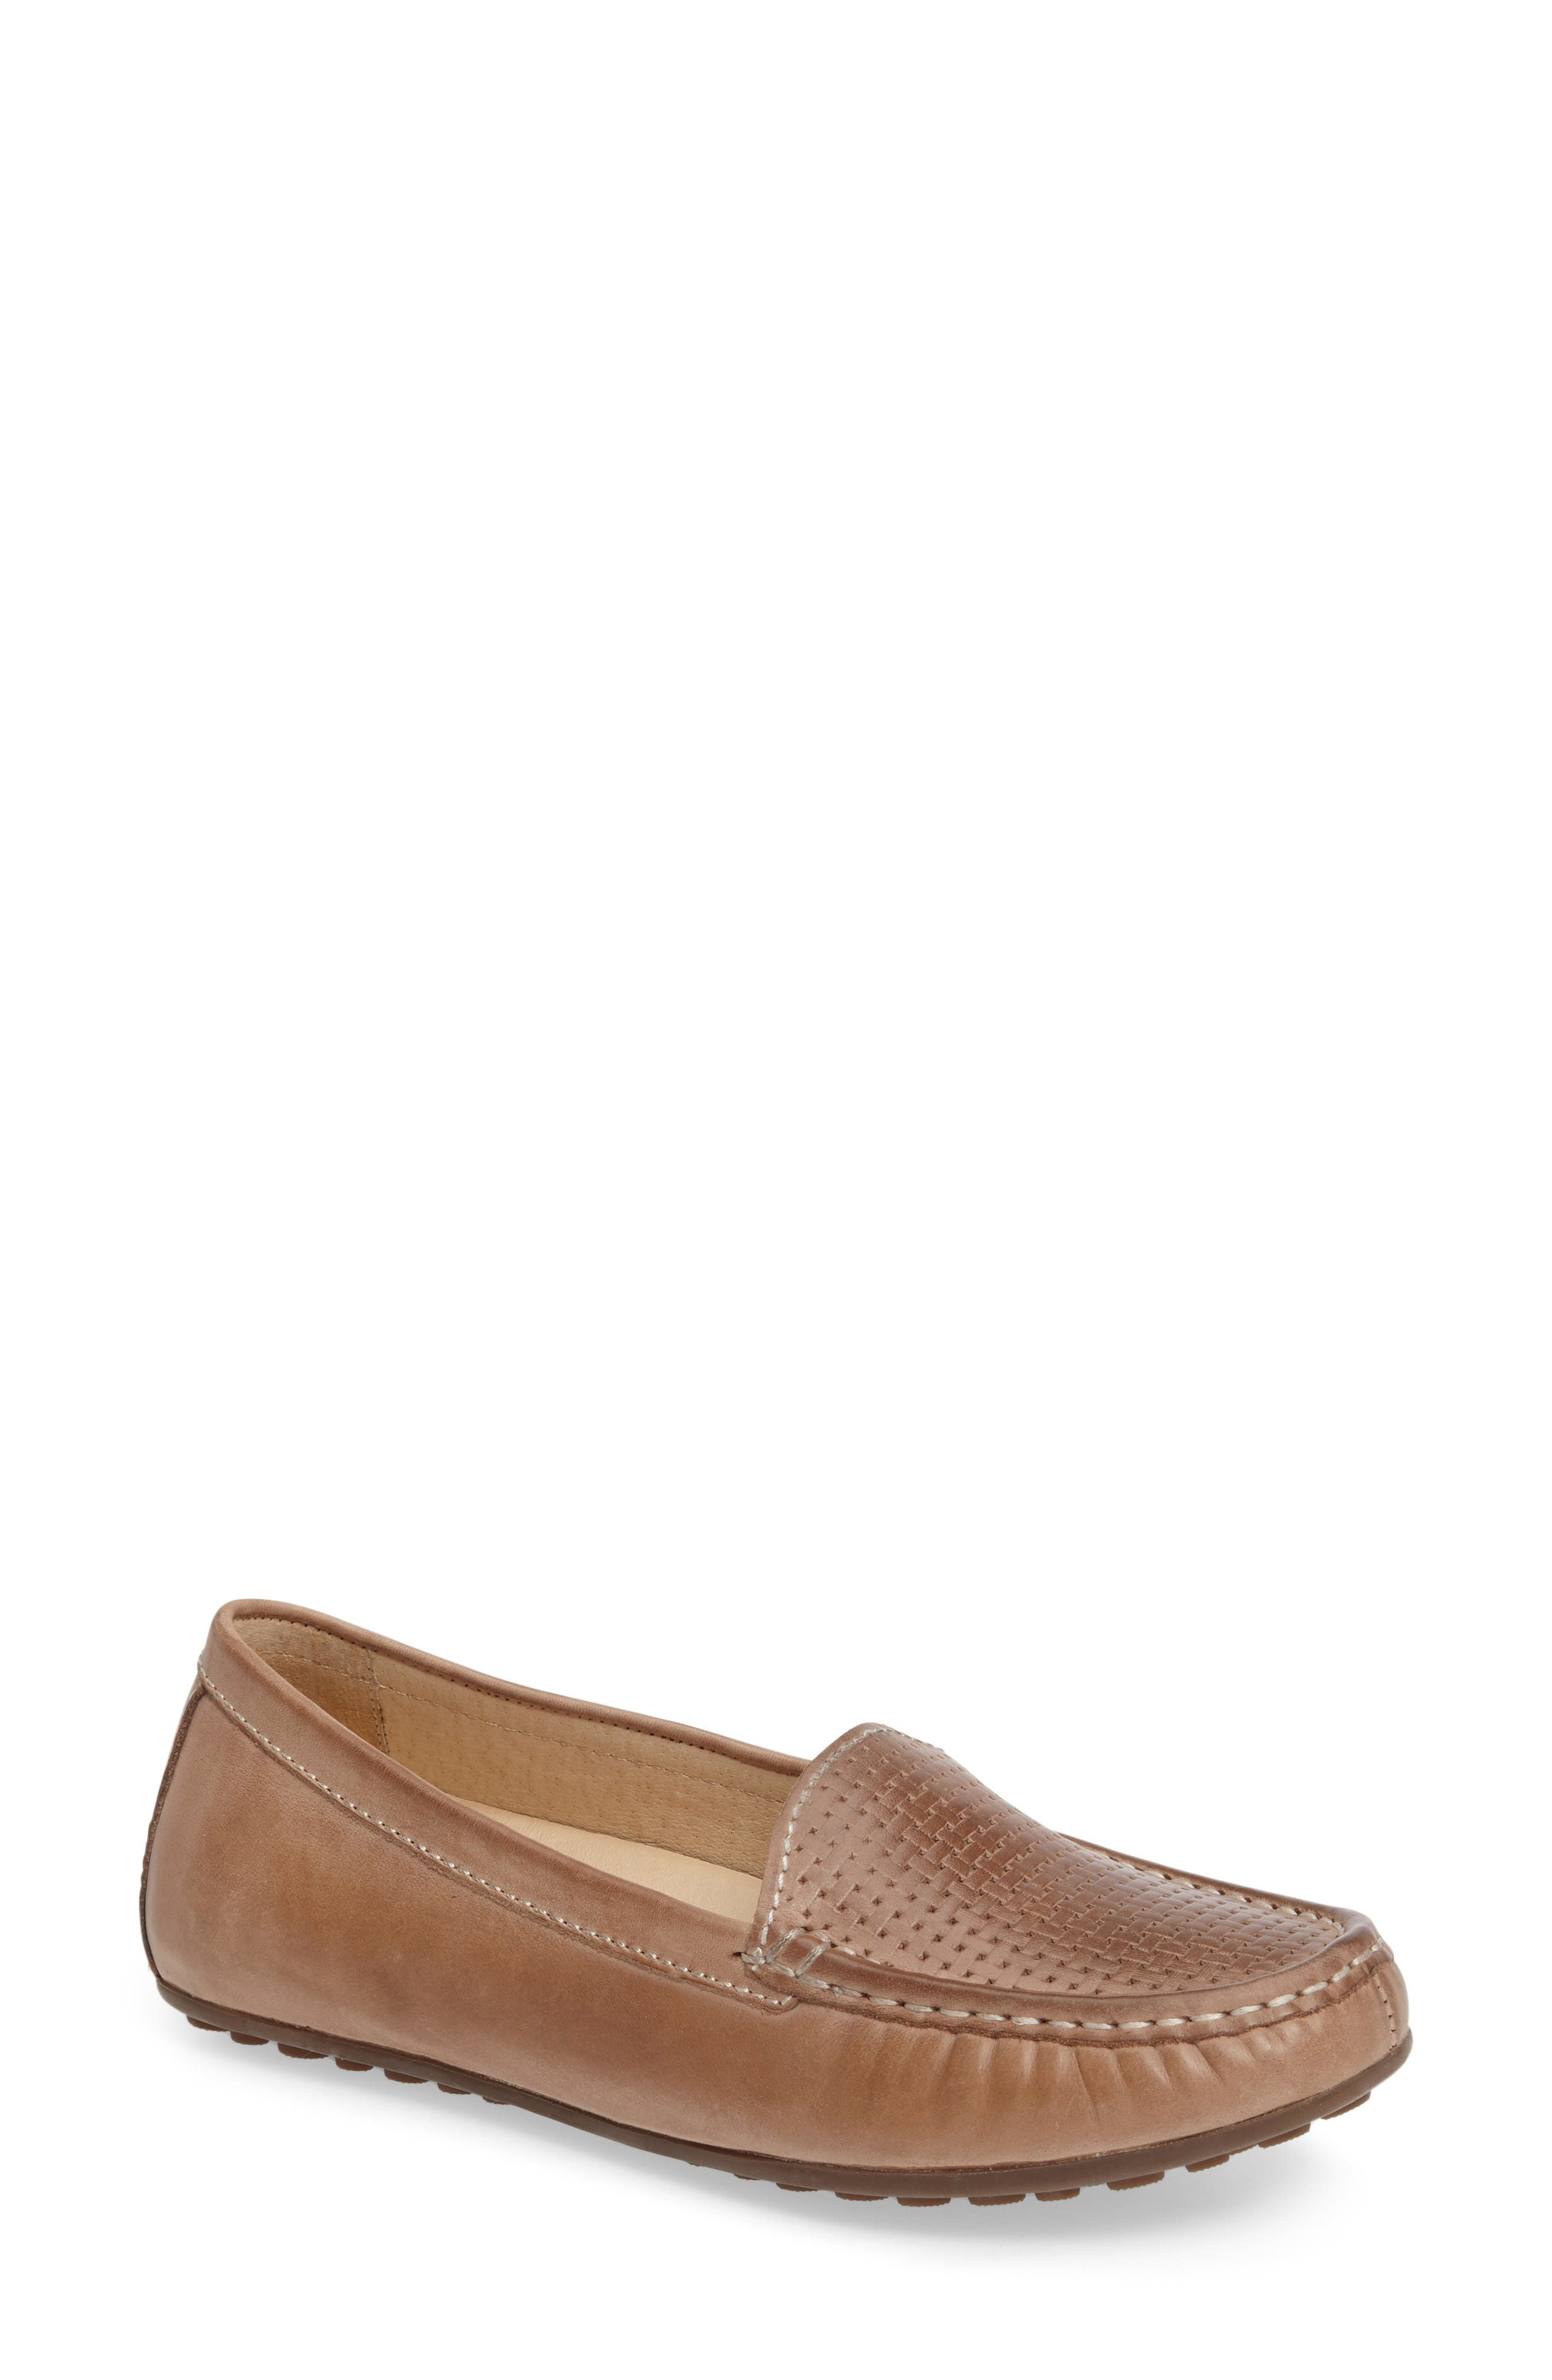 DAVID TATE Lana Loafer